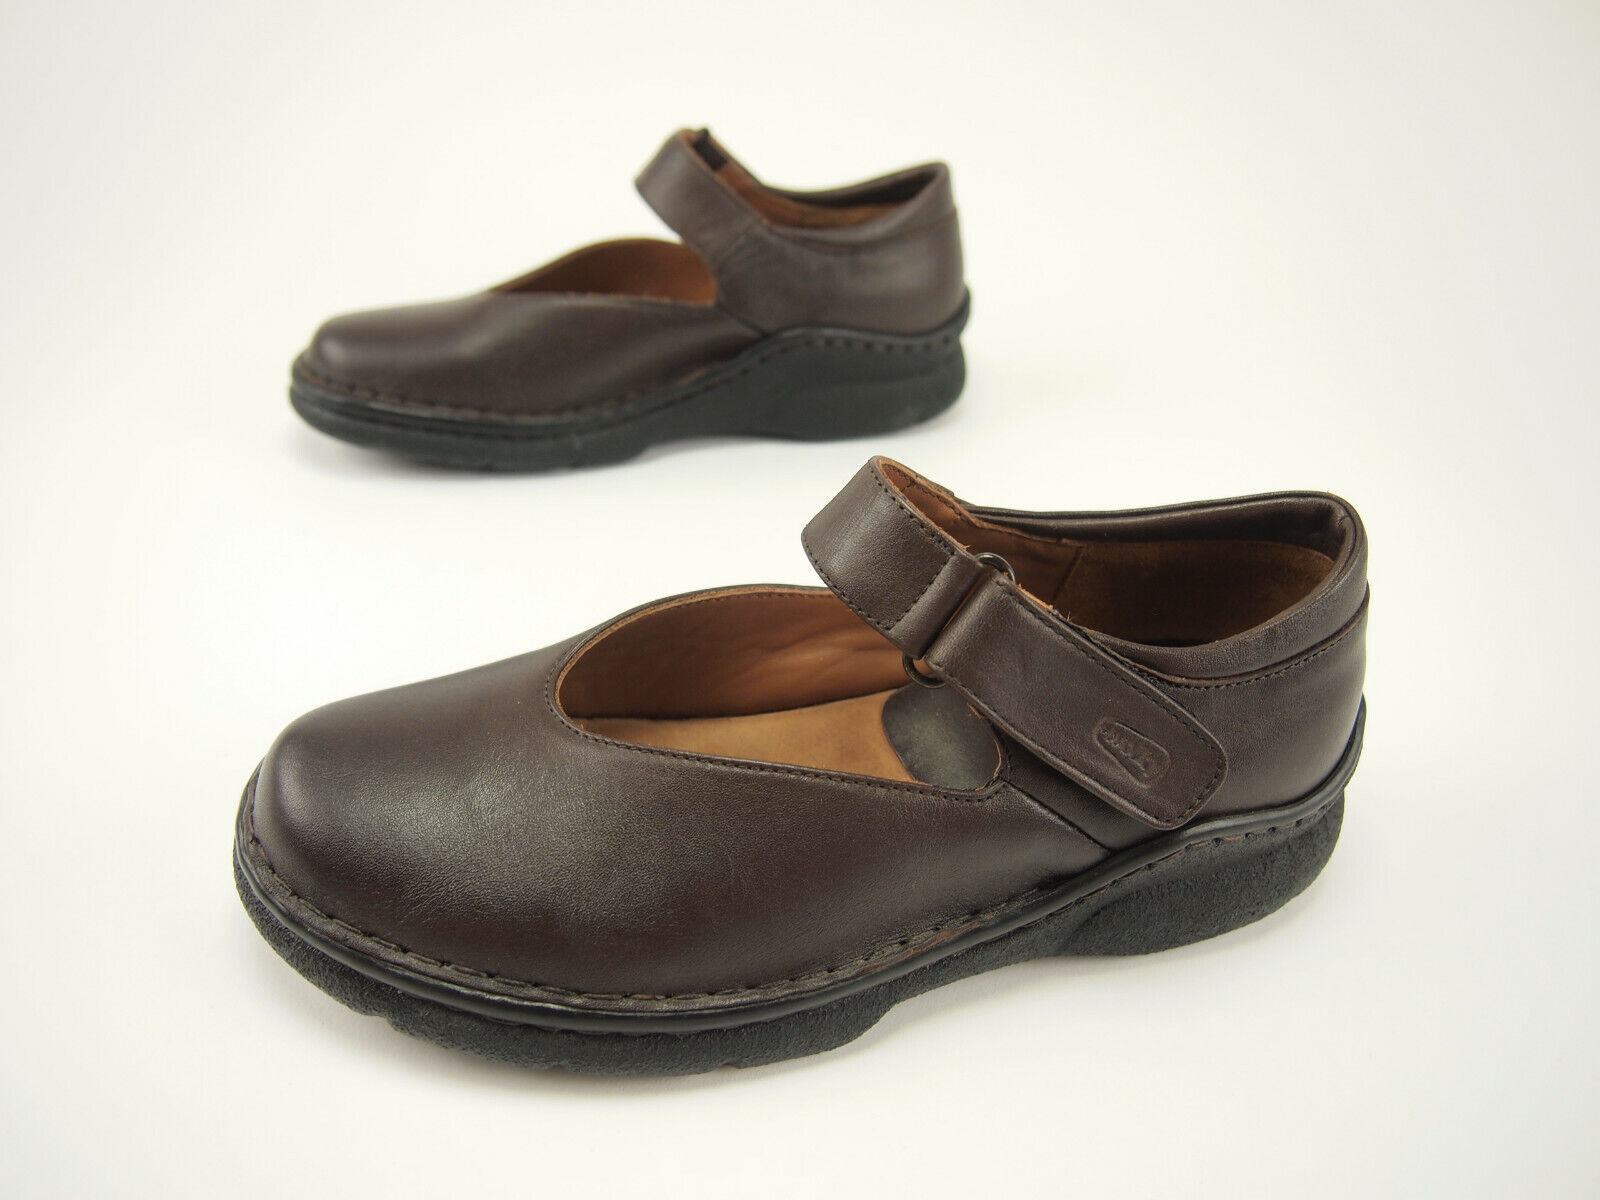 New  Wolky 923 Brown Leather Classic Mary Janes 38 - US 7